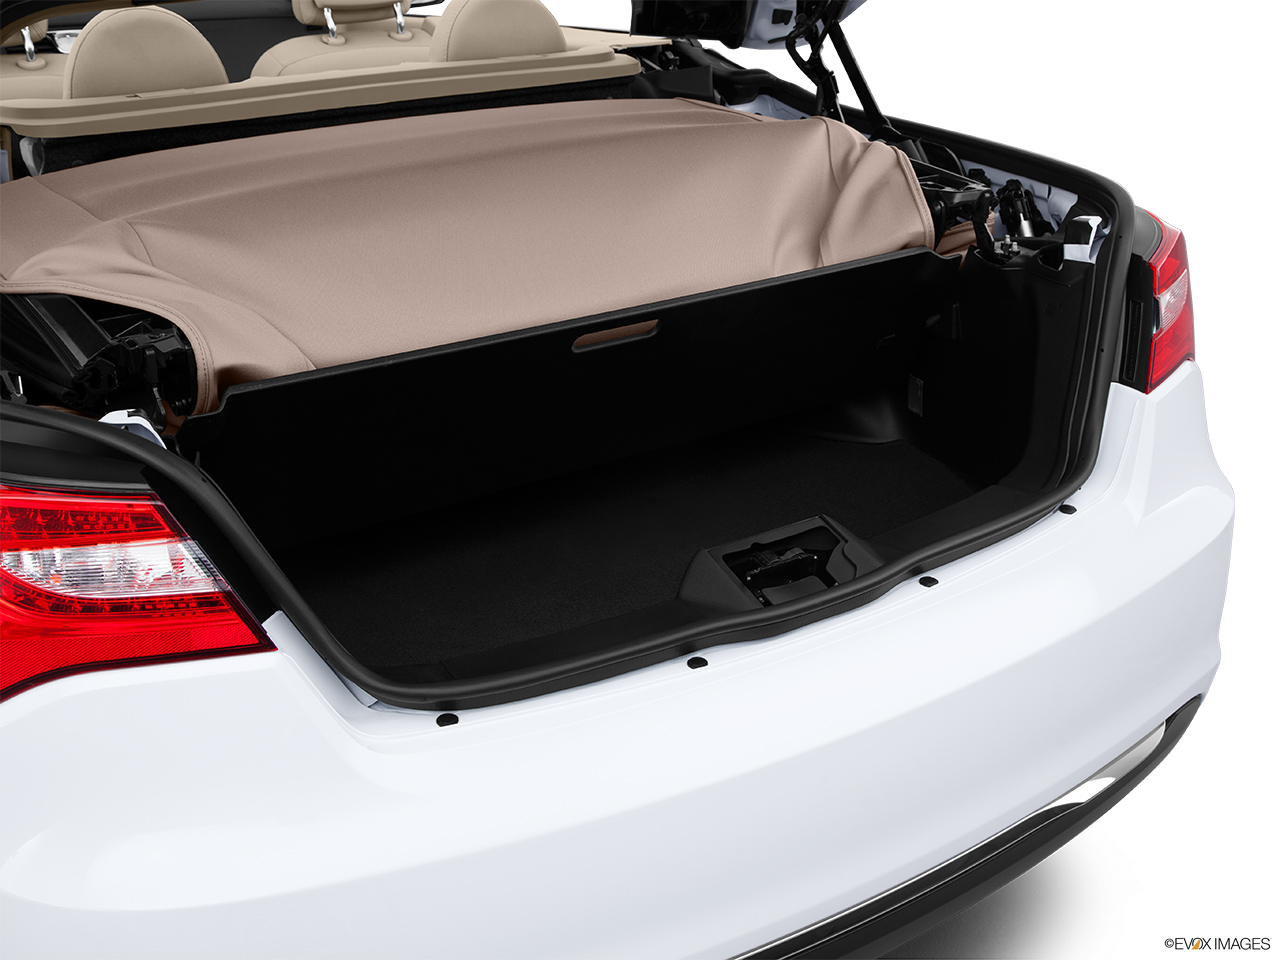 pics for chrysler 200 convertible trunk. Black Bedroom Furniture Sets. Home Design Ideas